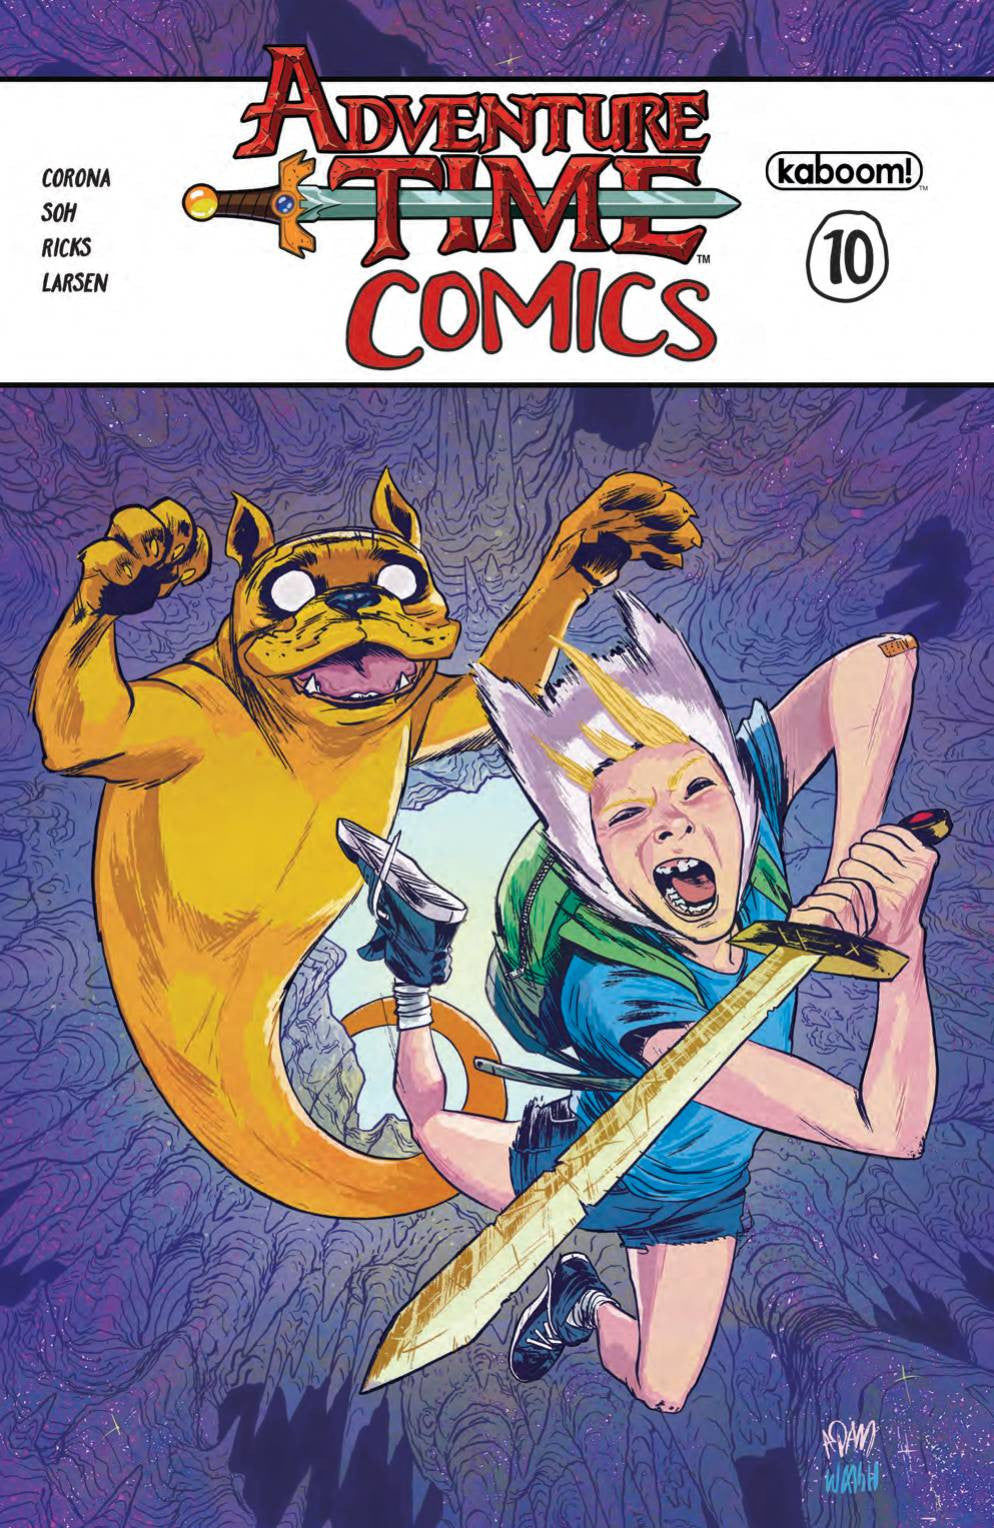 ADVENTURE TIME COMICS #10 CVR A GORHAM